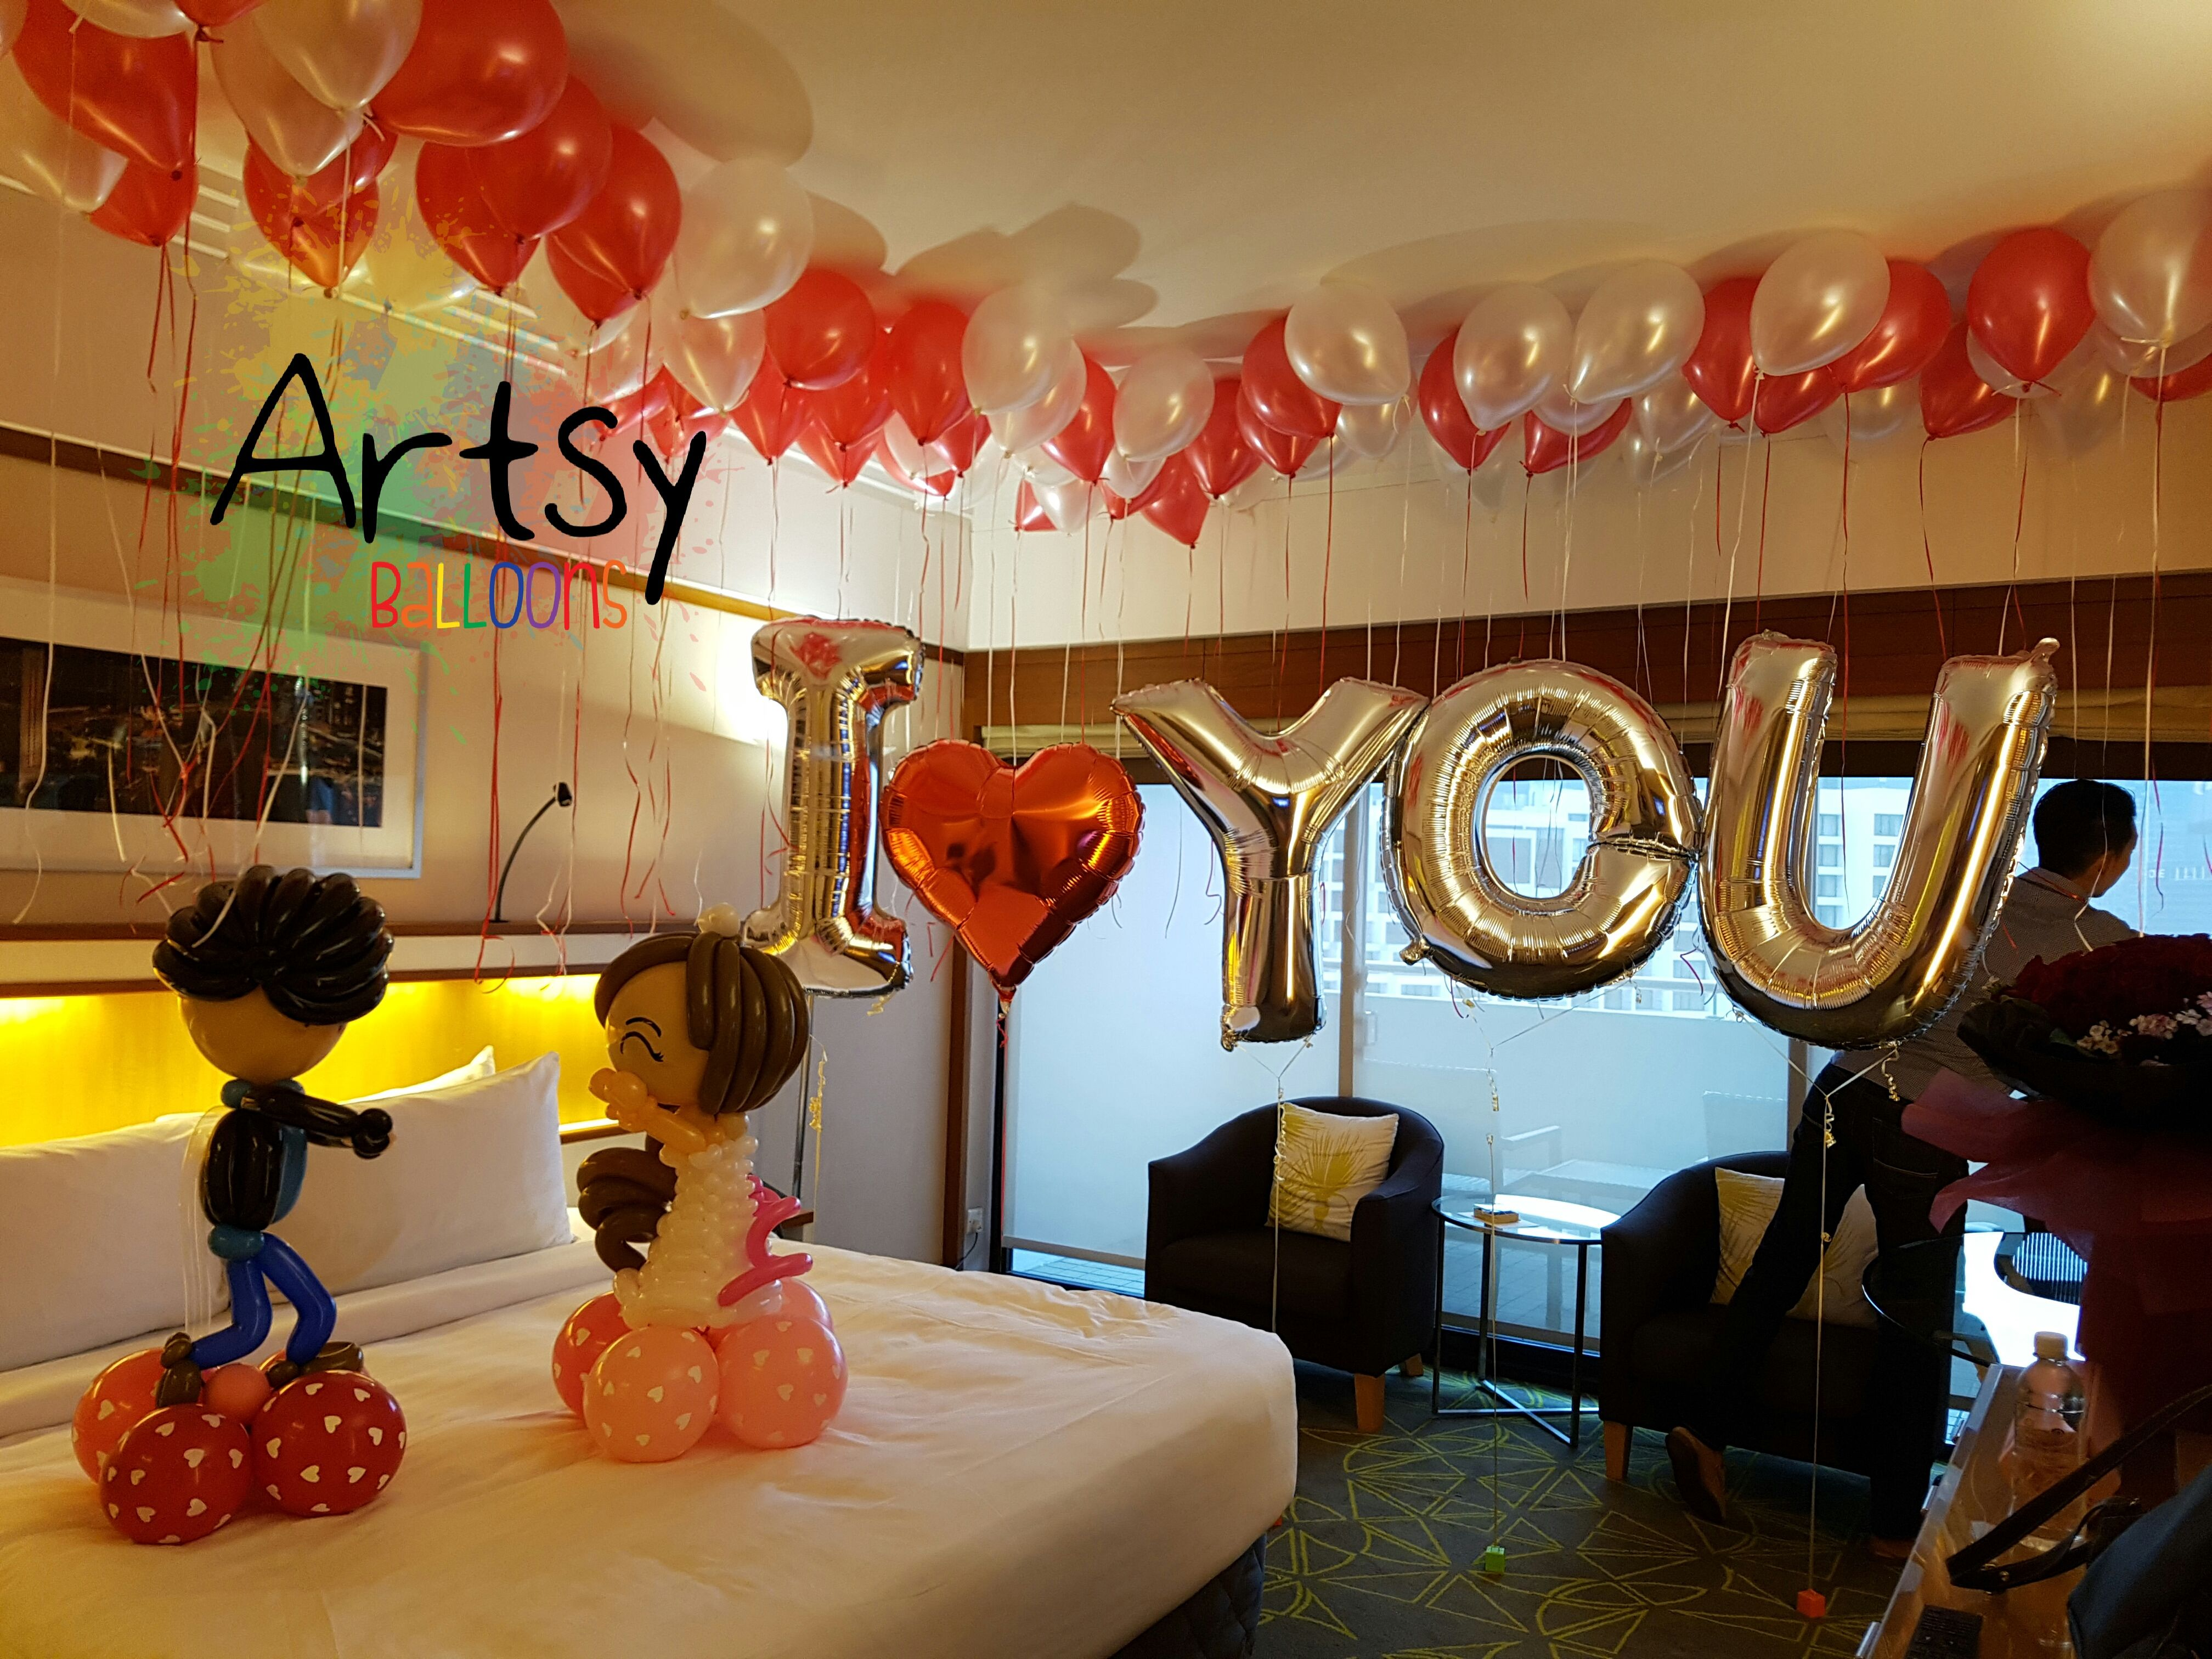 wedding reception photo booth singapore%0A Sweet balloon proposal with balloons